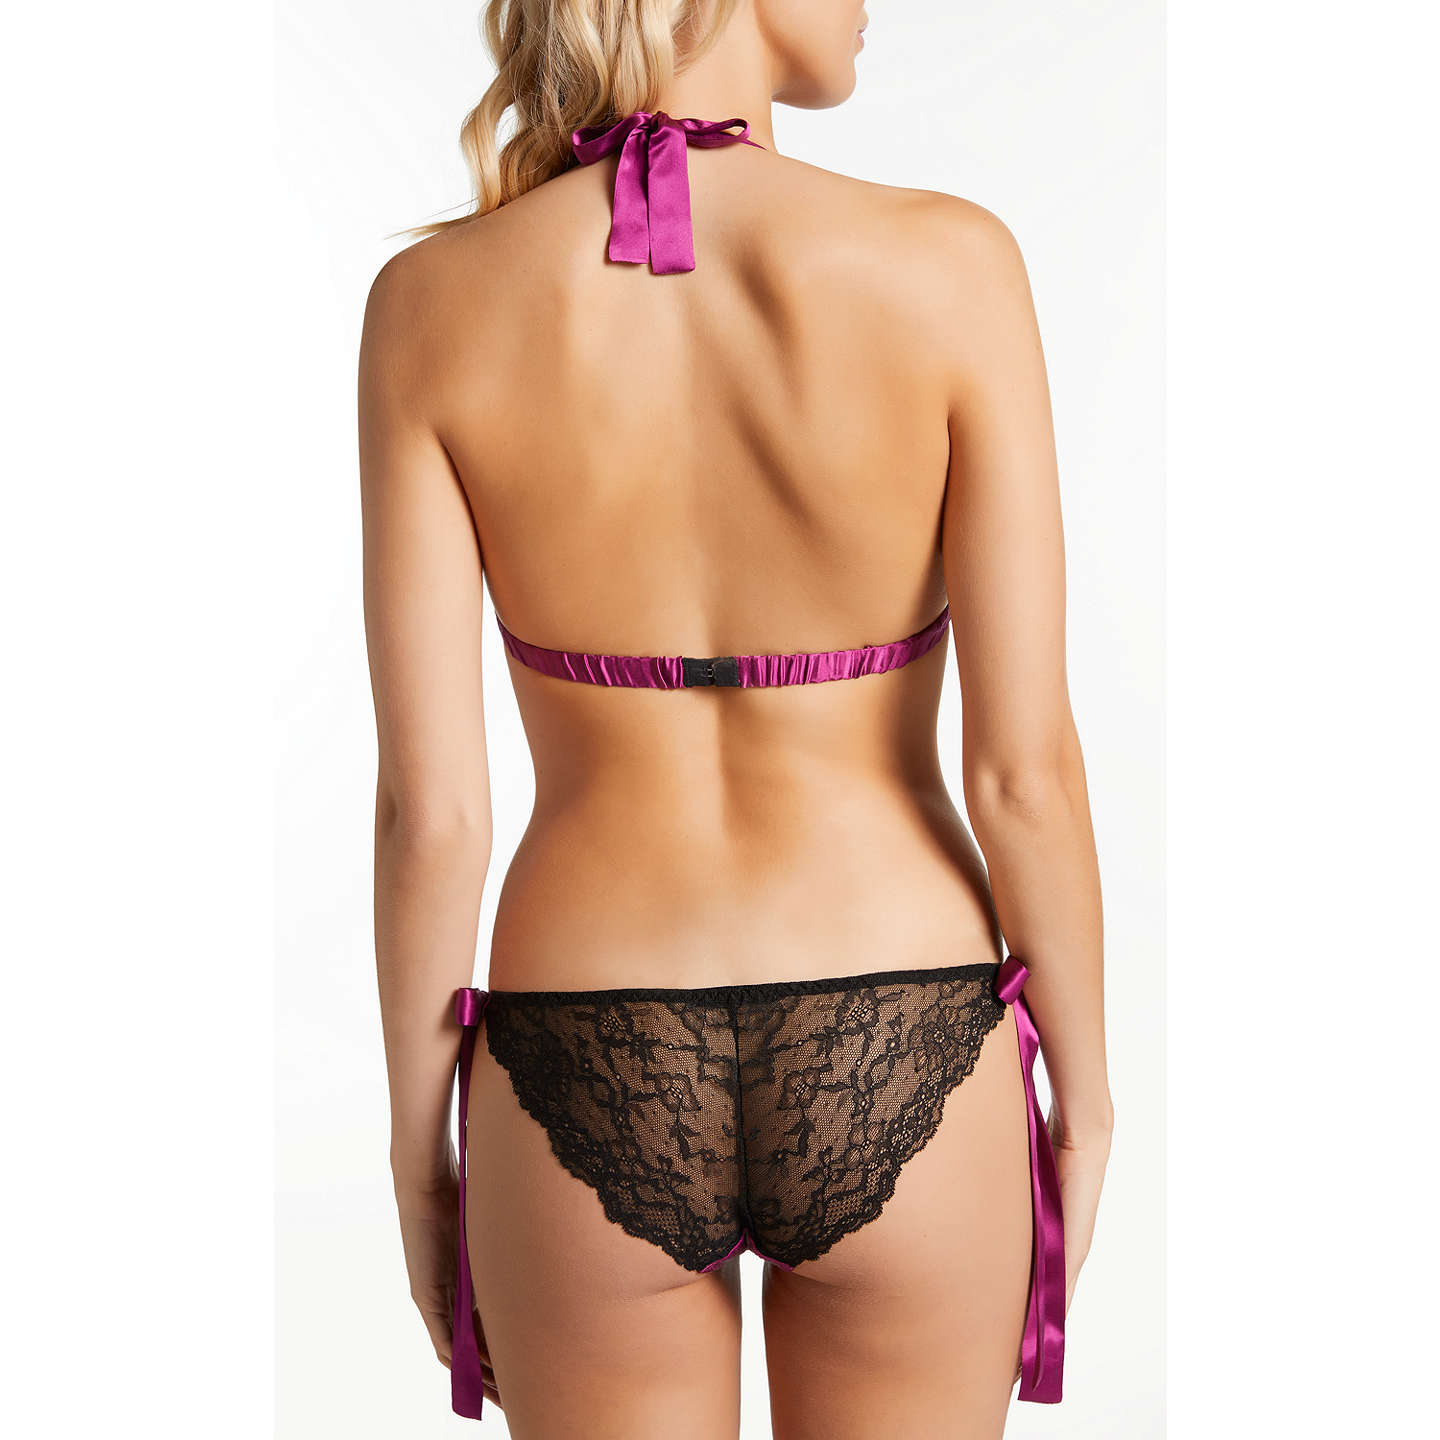 BuyDiane Houston Vivien Silk Lace Soft Bra, Black/Cassis, S Online at johnlewis.com